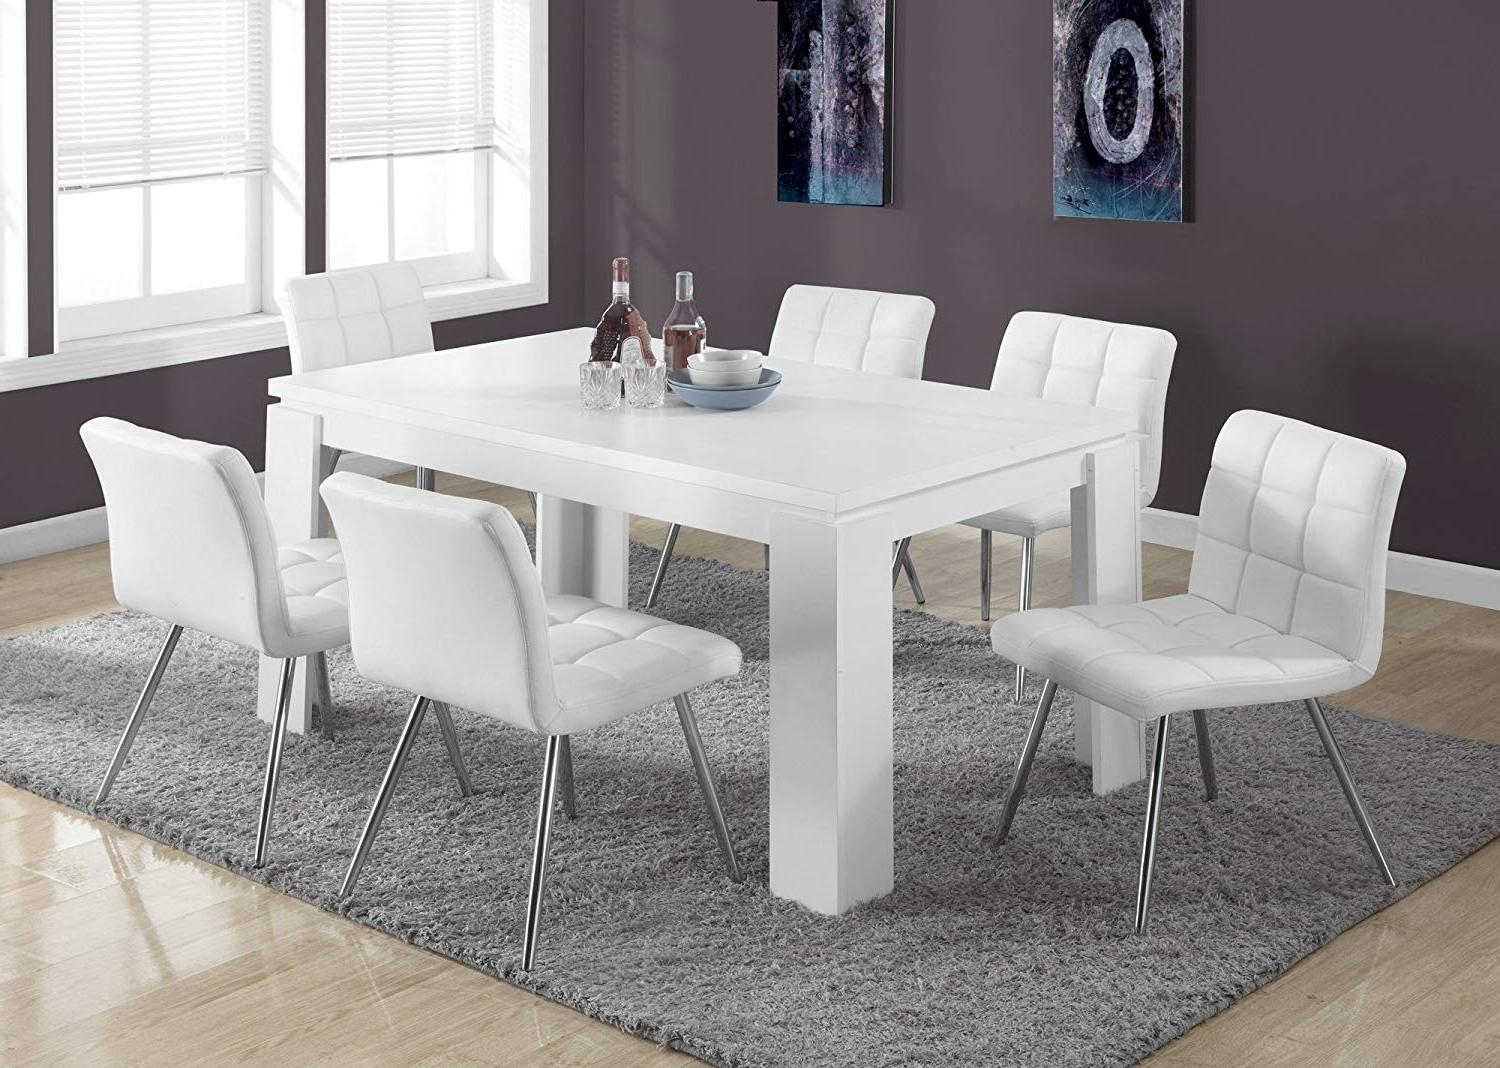 Well Known Amazon – Monarch Specialties I 1056, Dining Table, White Hollow Inside Dining Tables With White Legs (View 22 of 25)